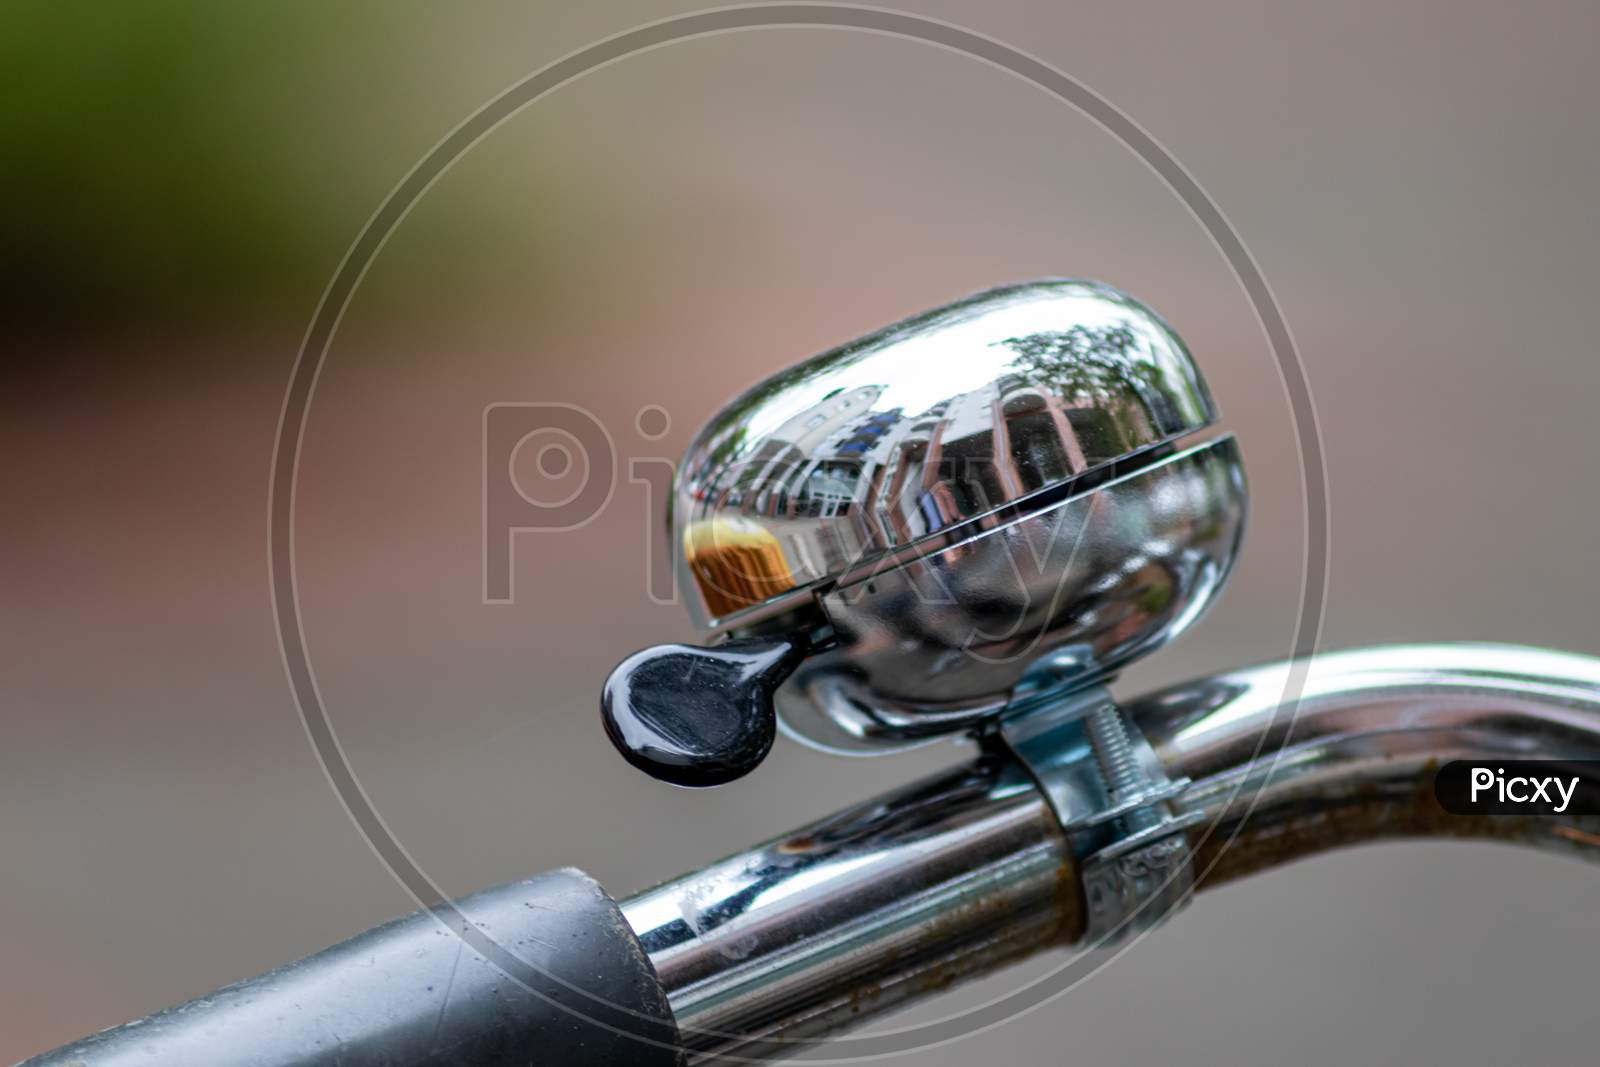 Beautiful splendid bike bell ensures security in the road traffic for bikers and pedestrians with a ringing noise as traffic safety and beautiful chromed decoration of a chromed handlebar